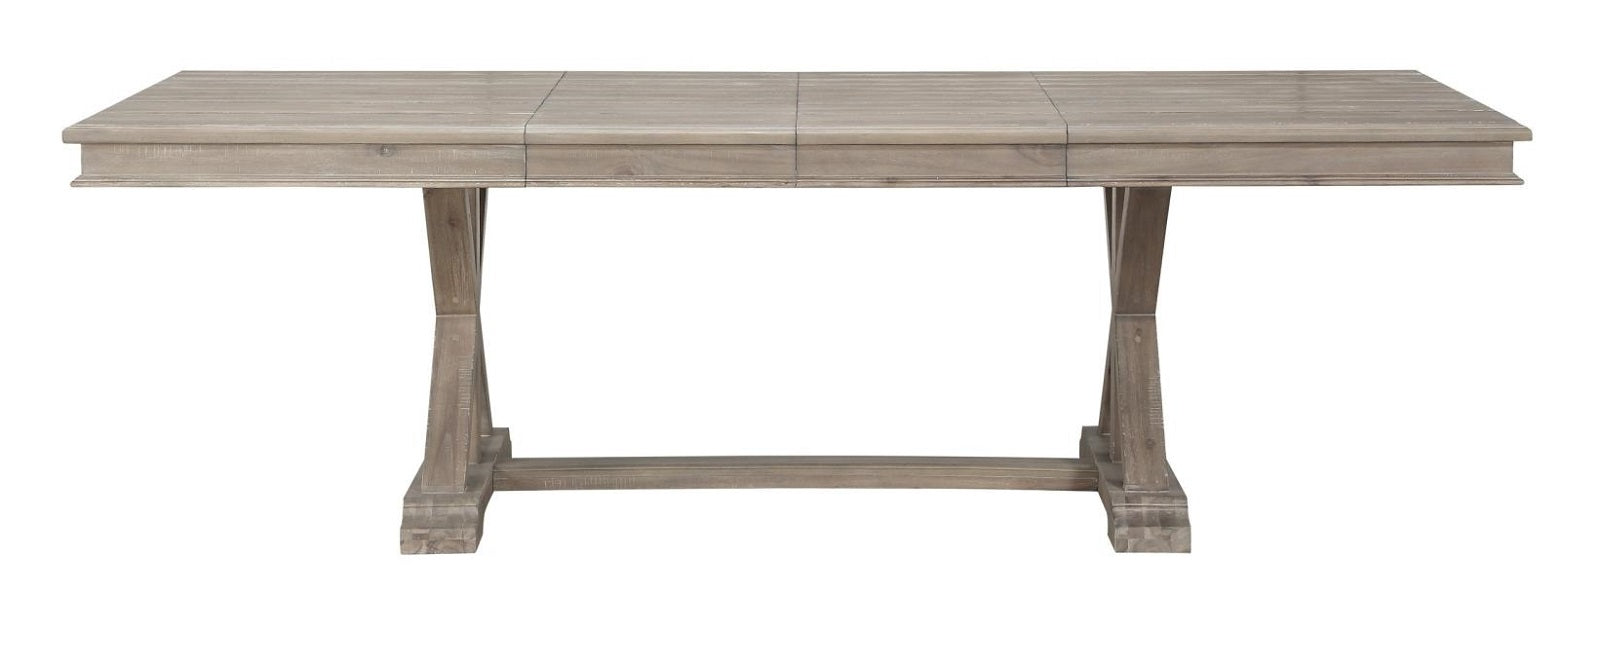 Homelegance Cardano Dining Table in Light Brown 1689BR-96* image